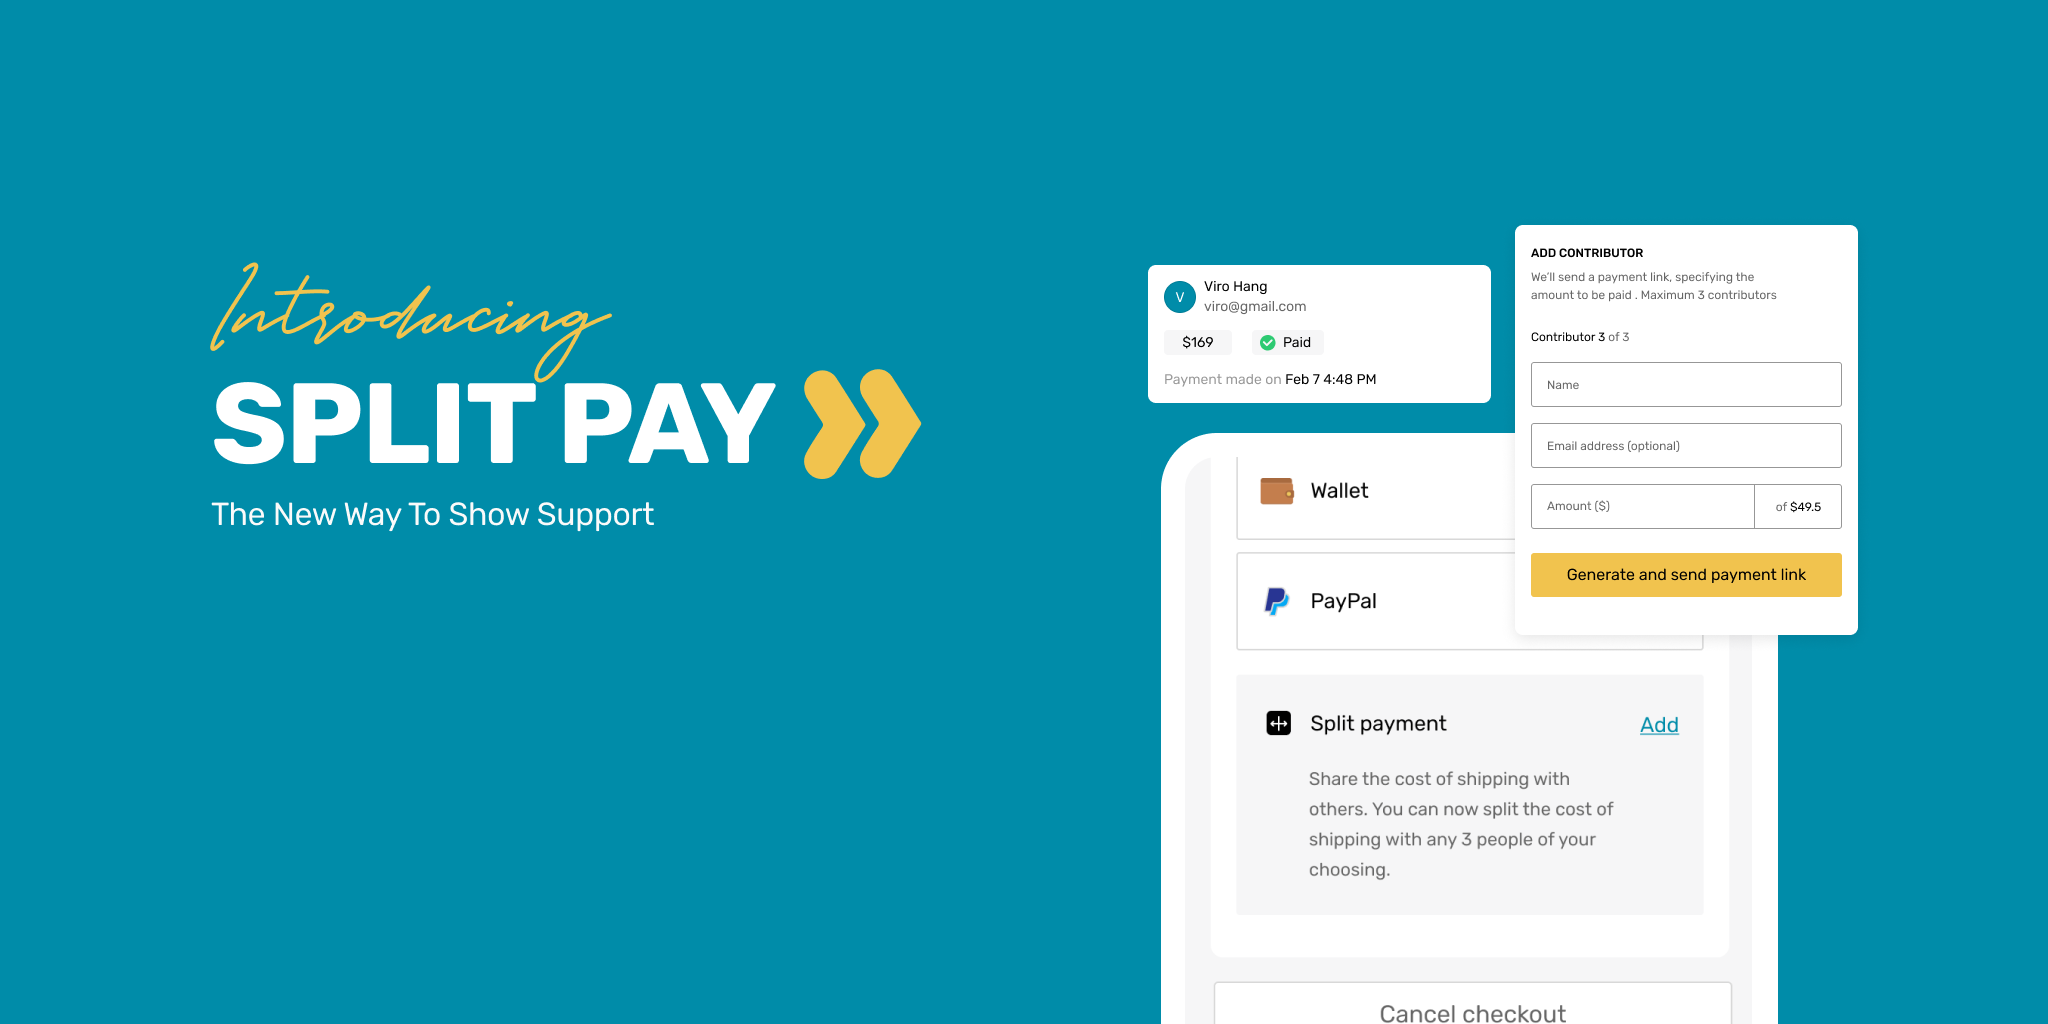 The newest way to show support - Split Payment is here